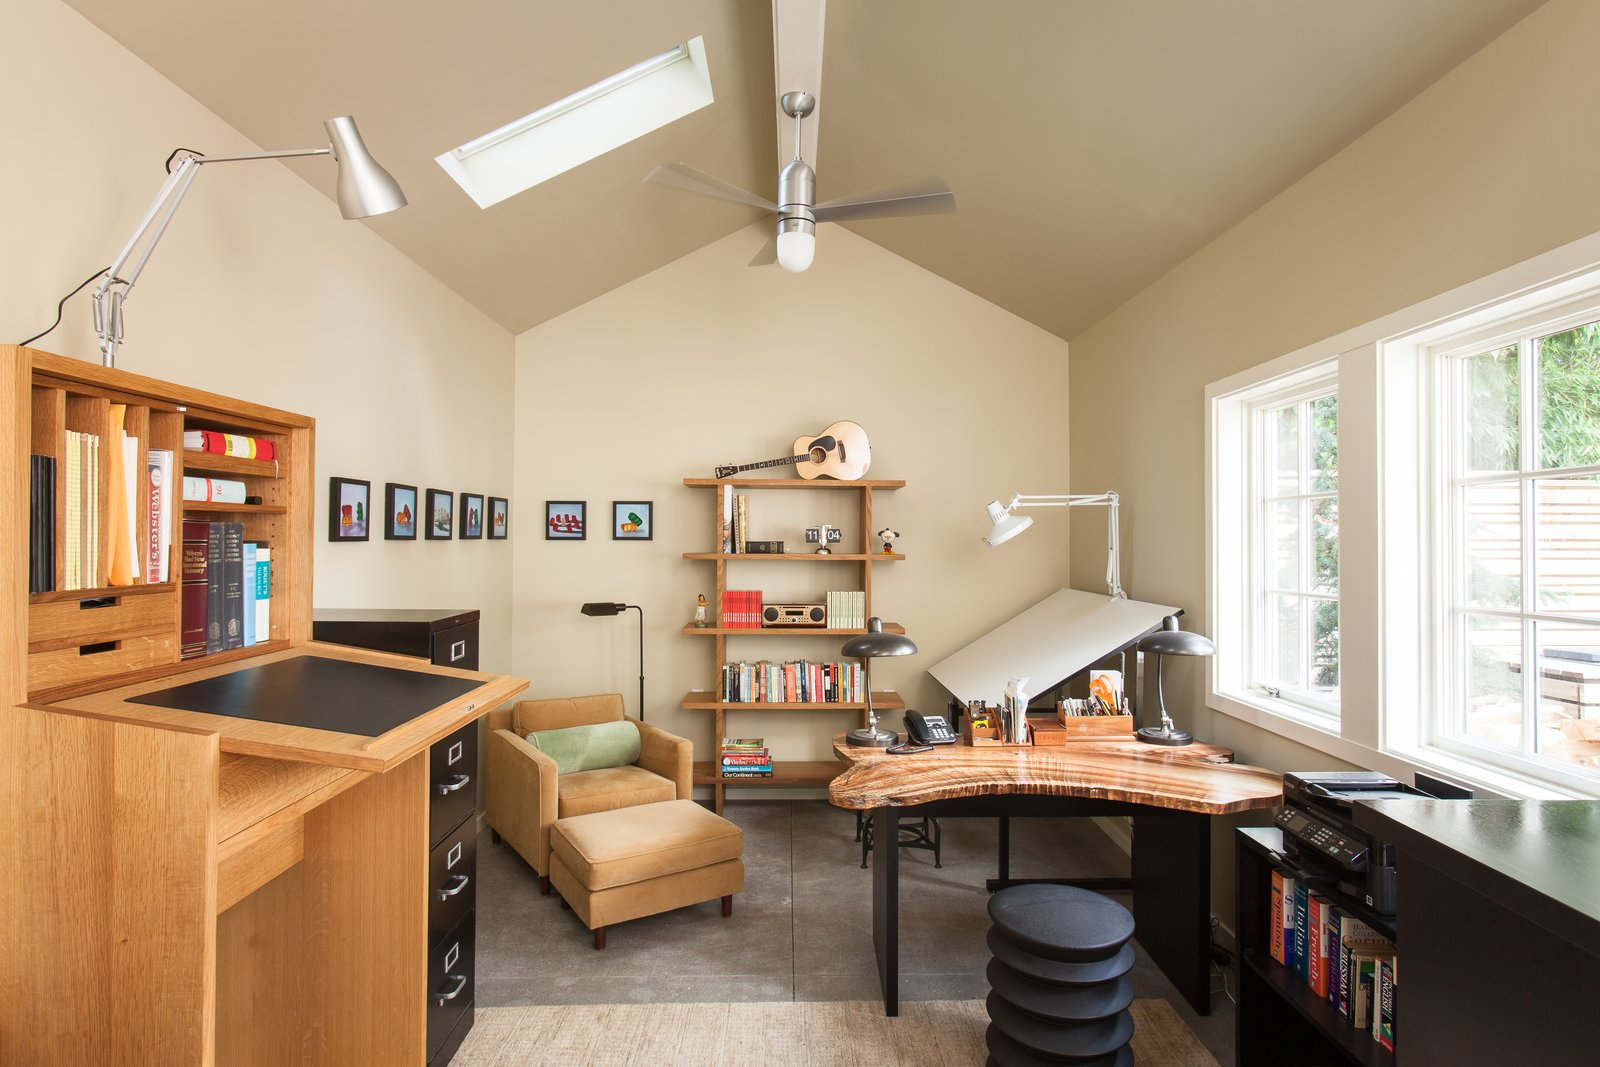 Office, Study Room Type, Desk, Bookcase, Shelves, and Concrete Floor Mid-way through construction, the owner decided to convert the garage into an office, as he liked it too much to give it over to parking. For more info: https://www.howellsarc.com/projects/michael-b/  Michael B by Howells Architecture + Design